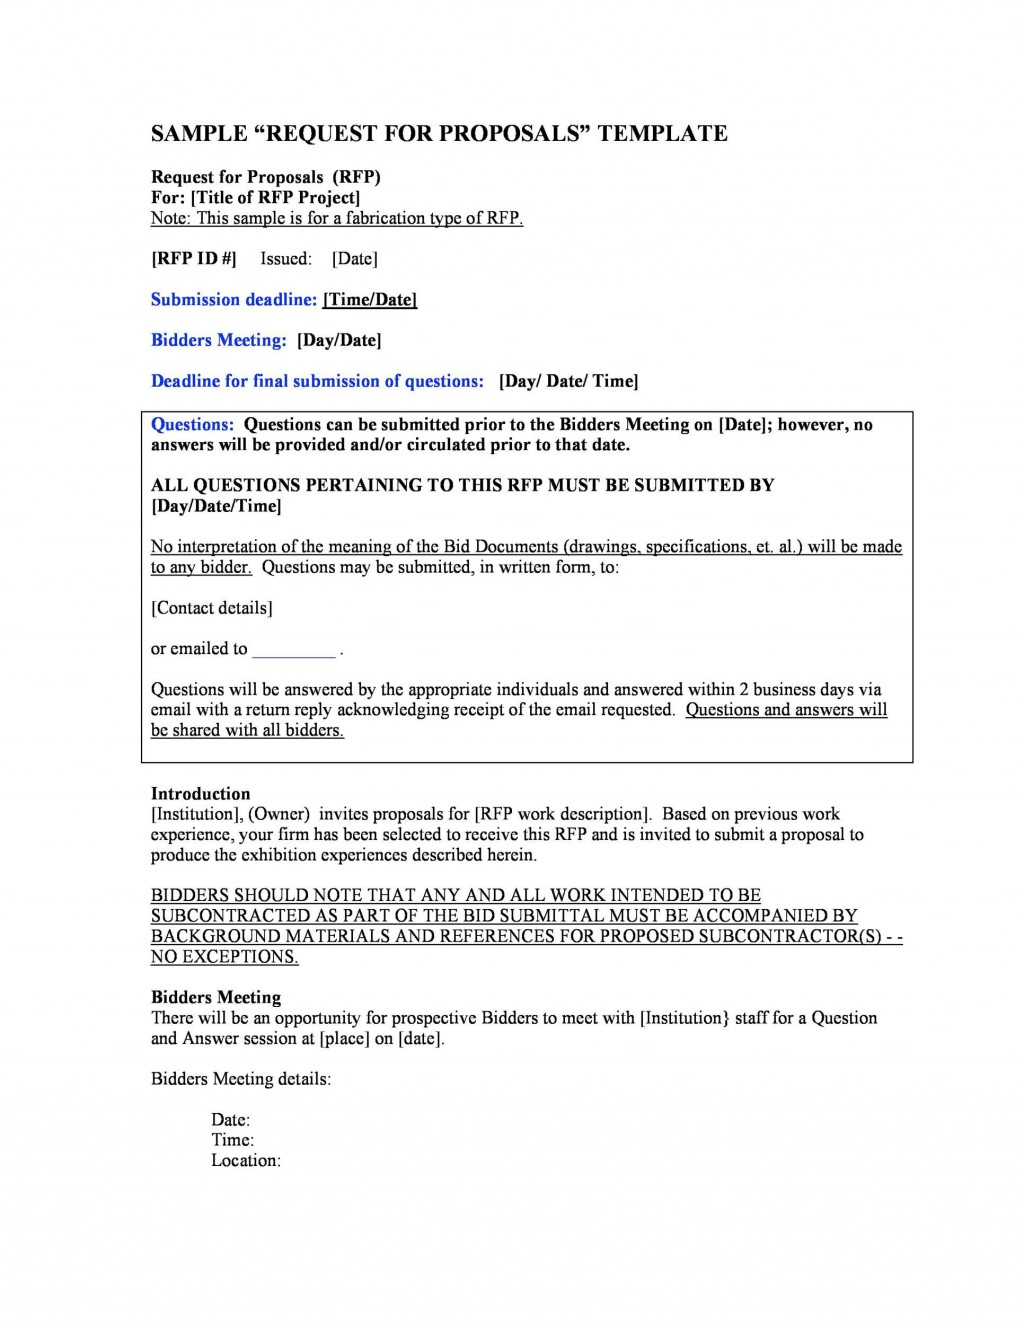 007 Magnificent Request For Proposal Response Template Free Sample Large